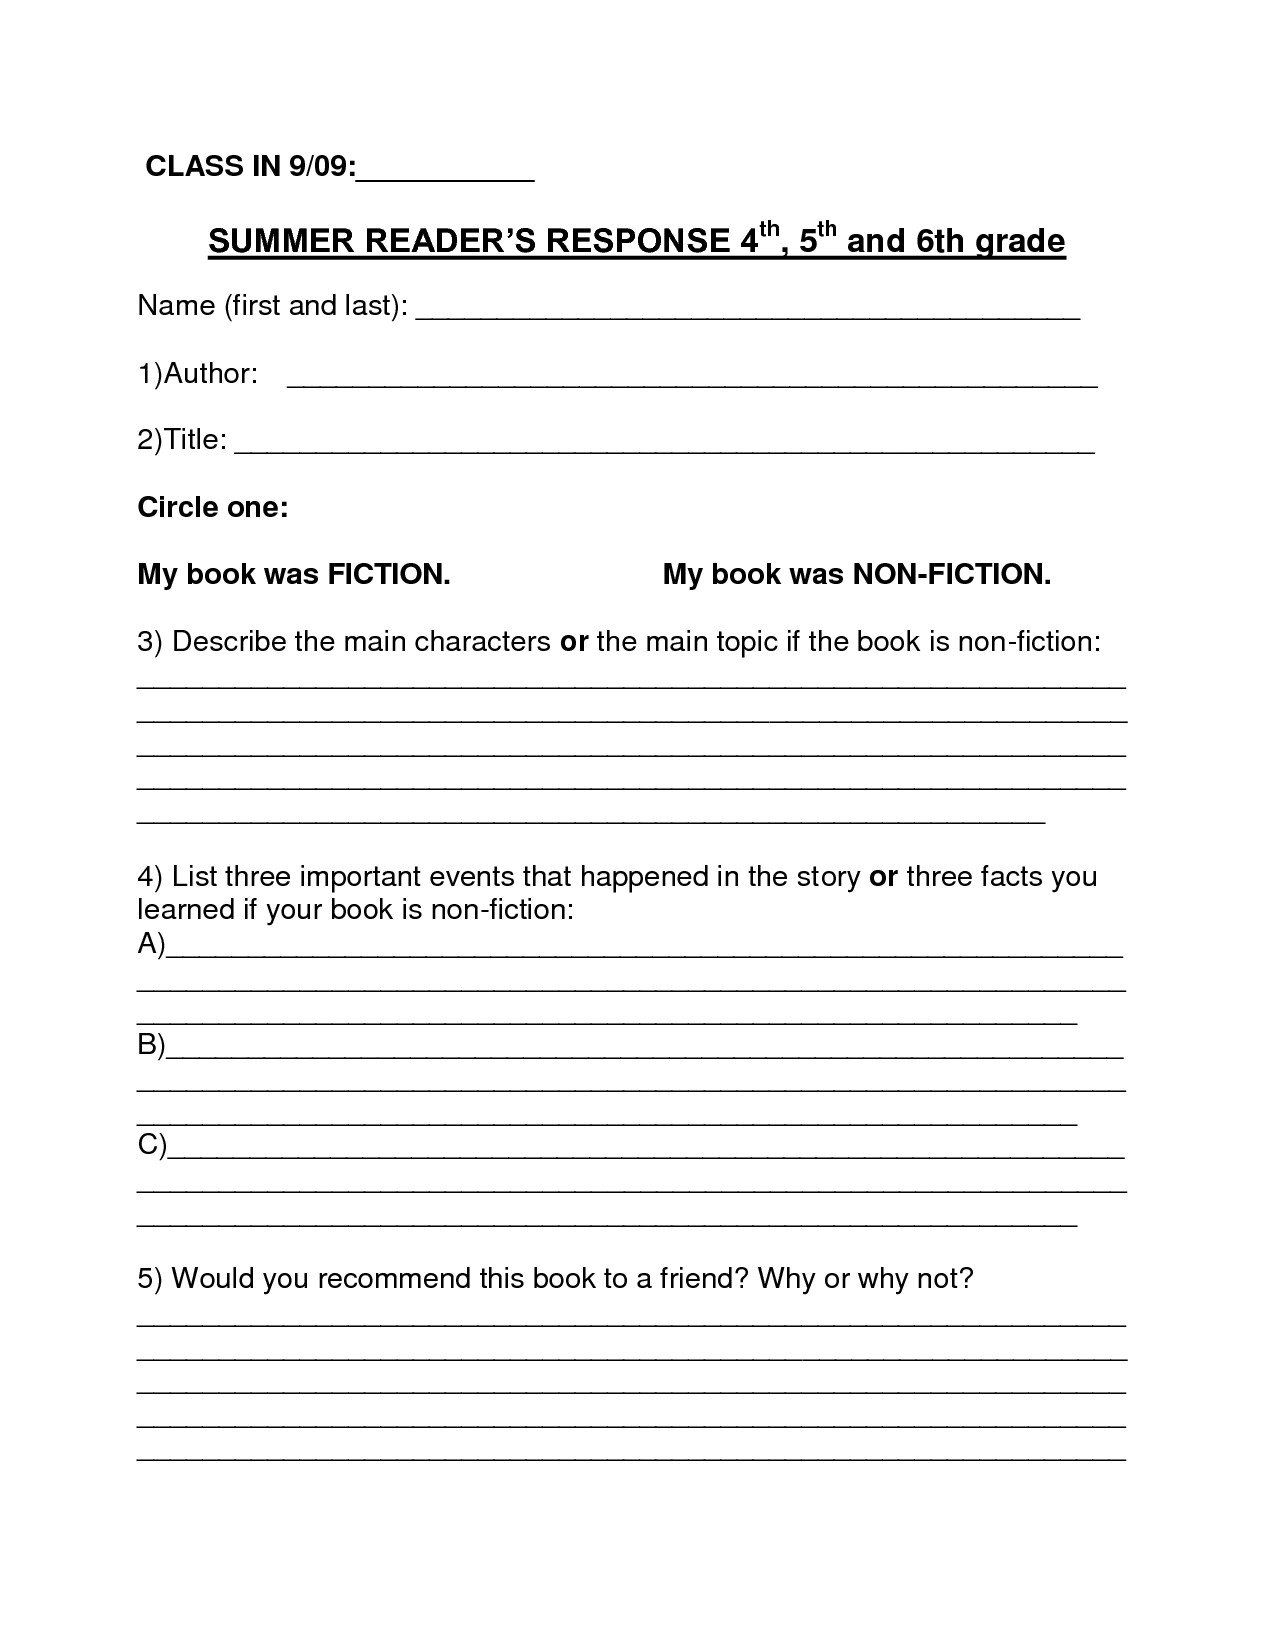 6th Grade Book Report Template Image Result for Book Report Summer Reading form 6th Grade